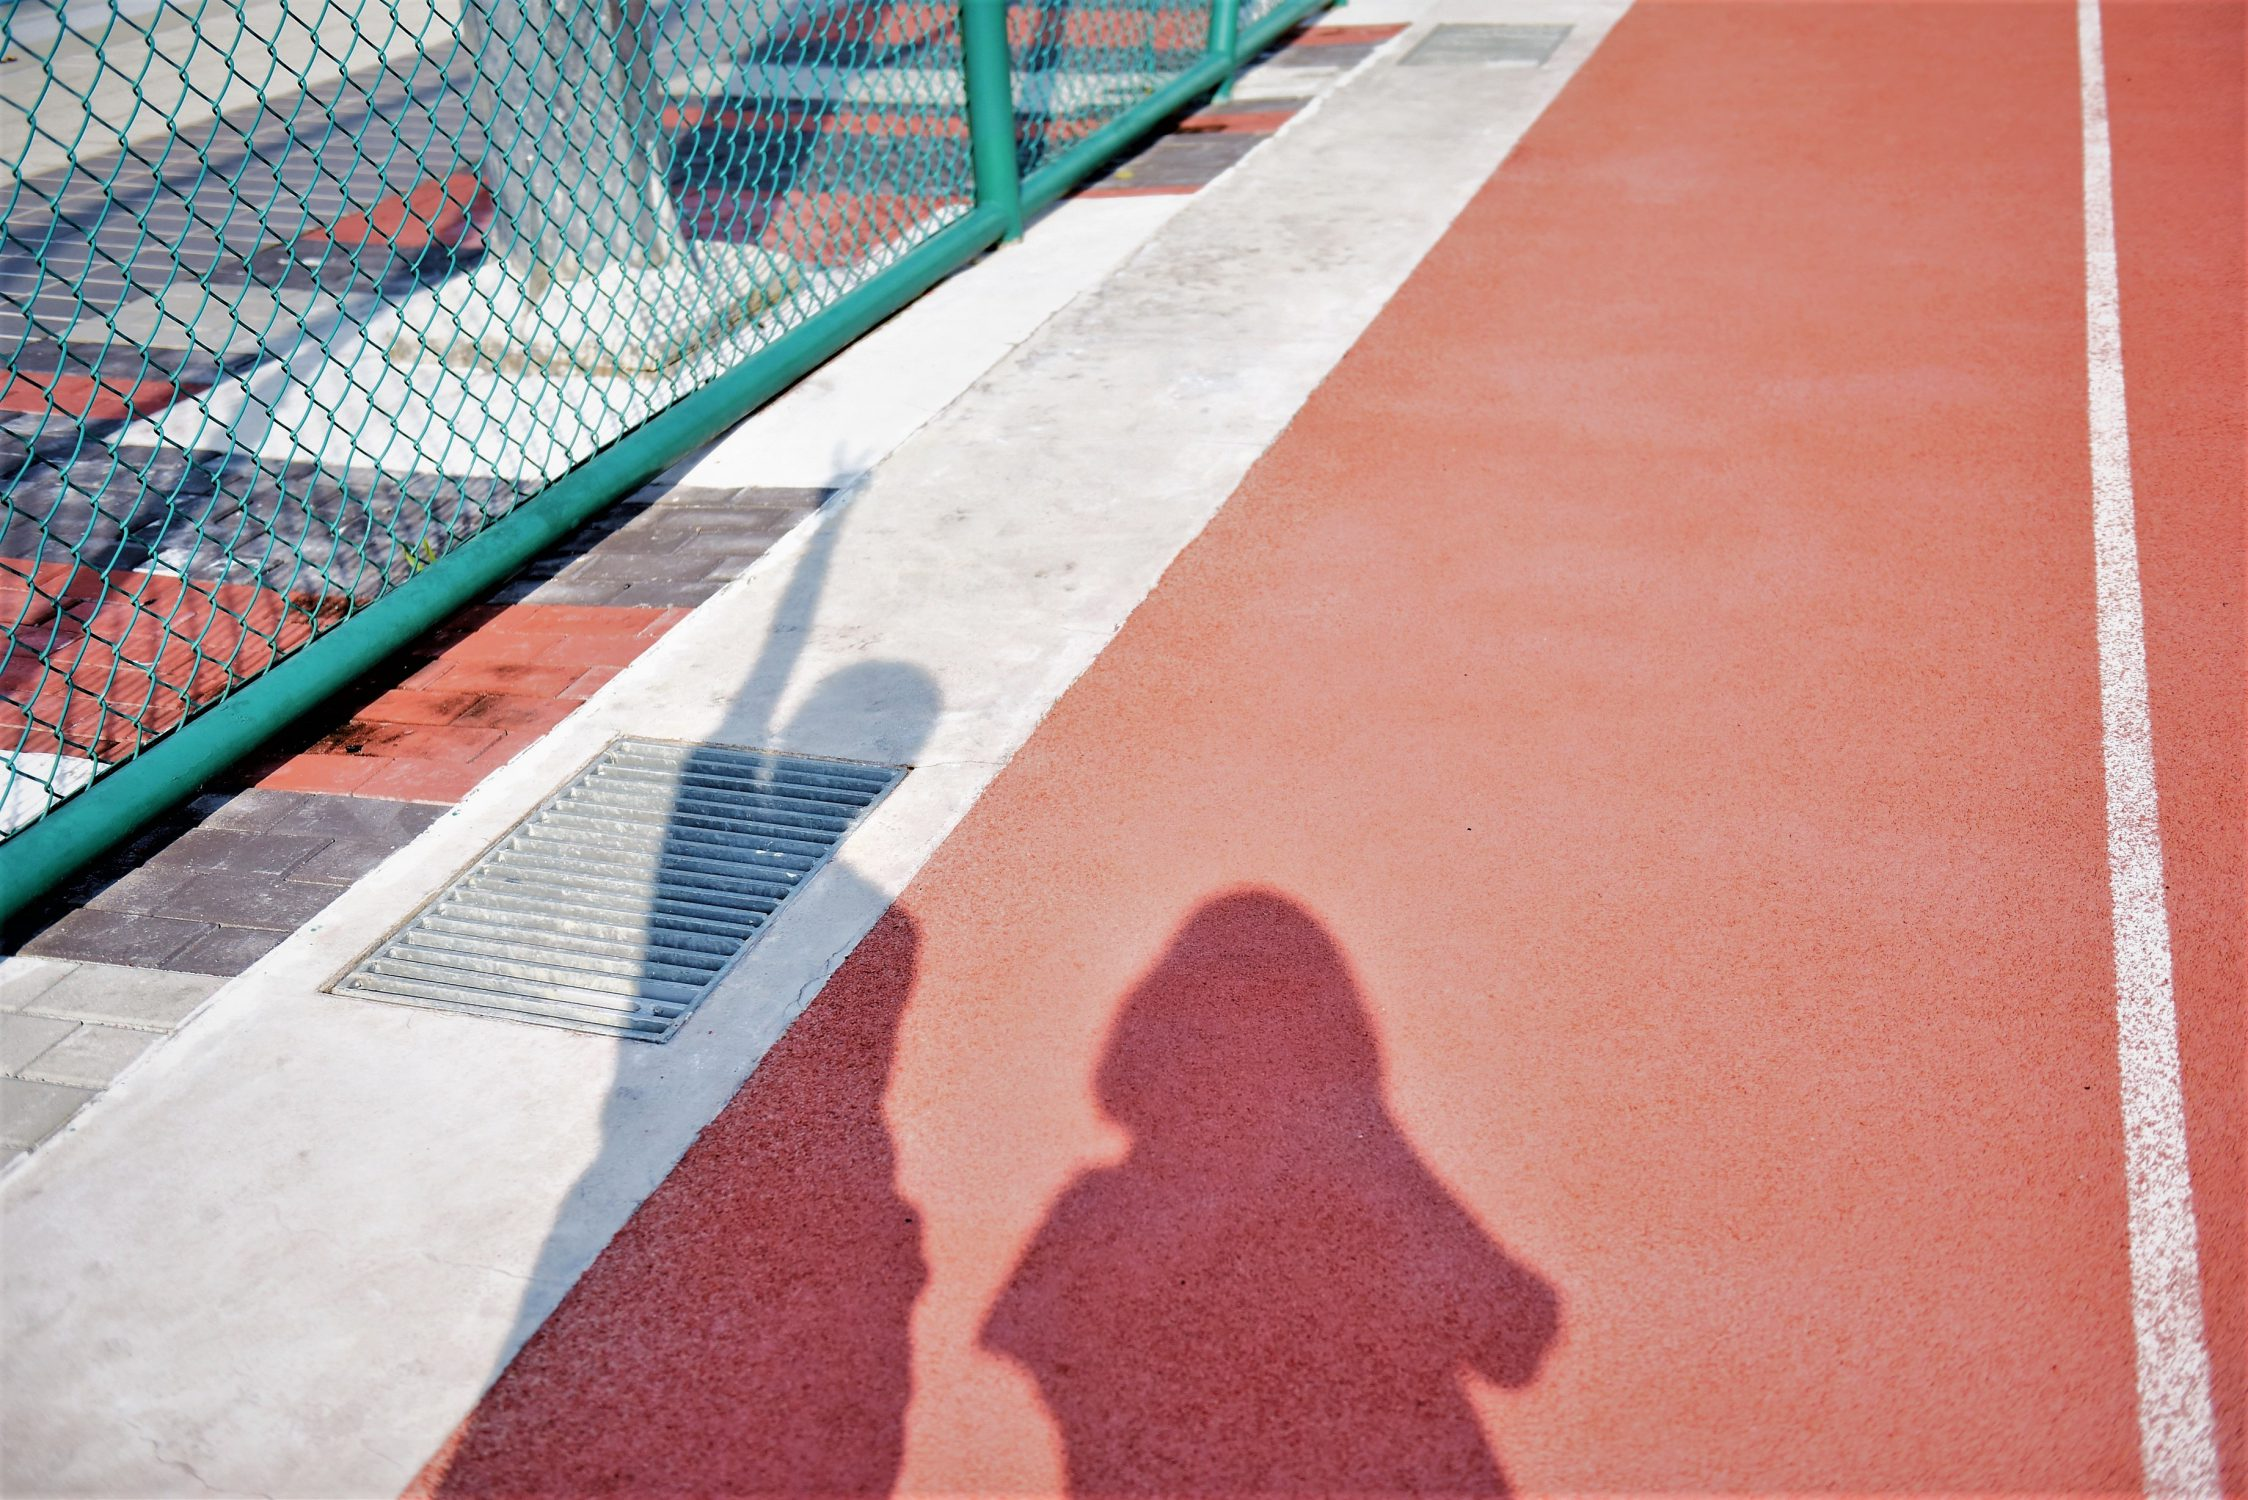 Two peoples' shadows